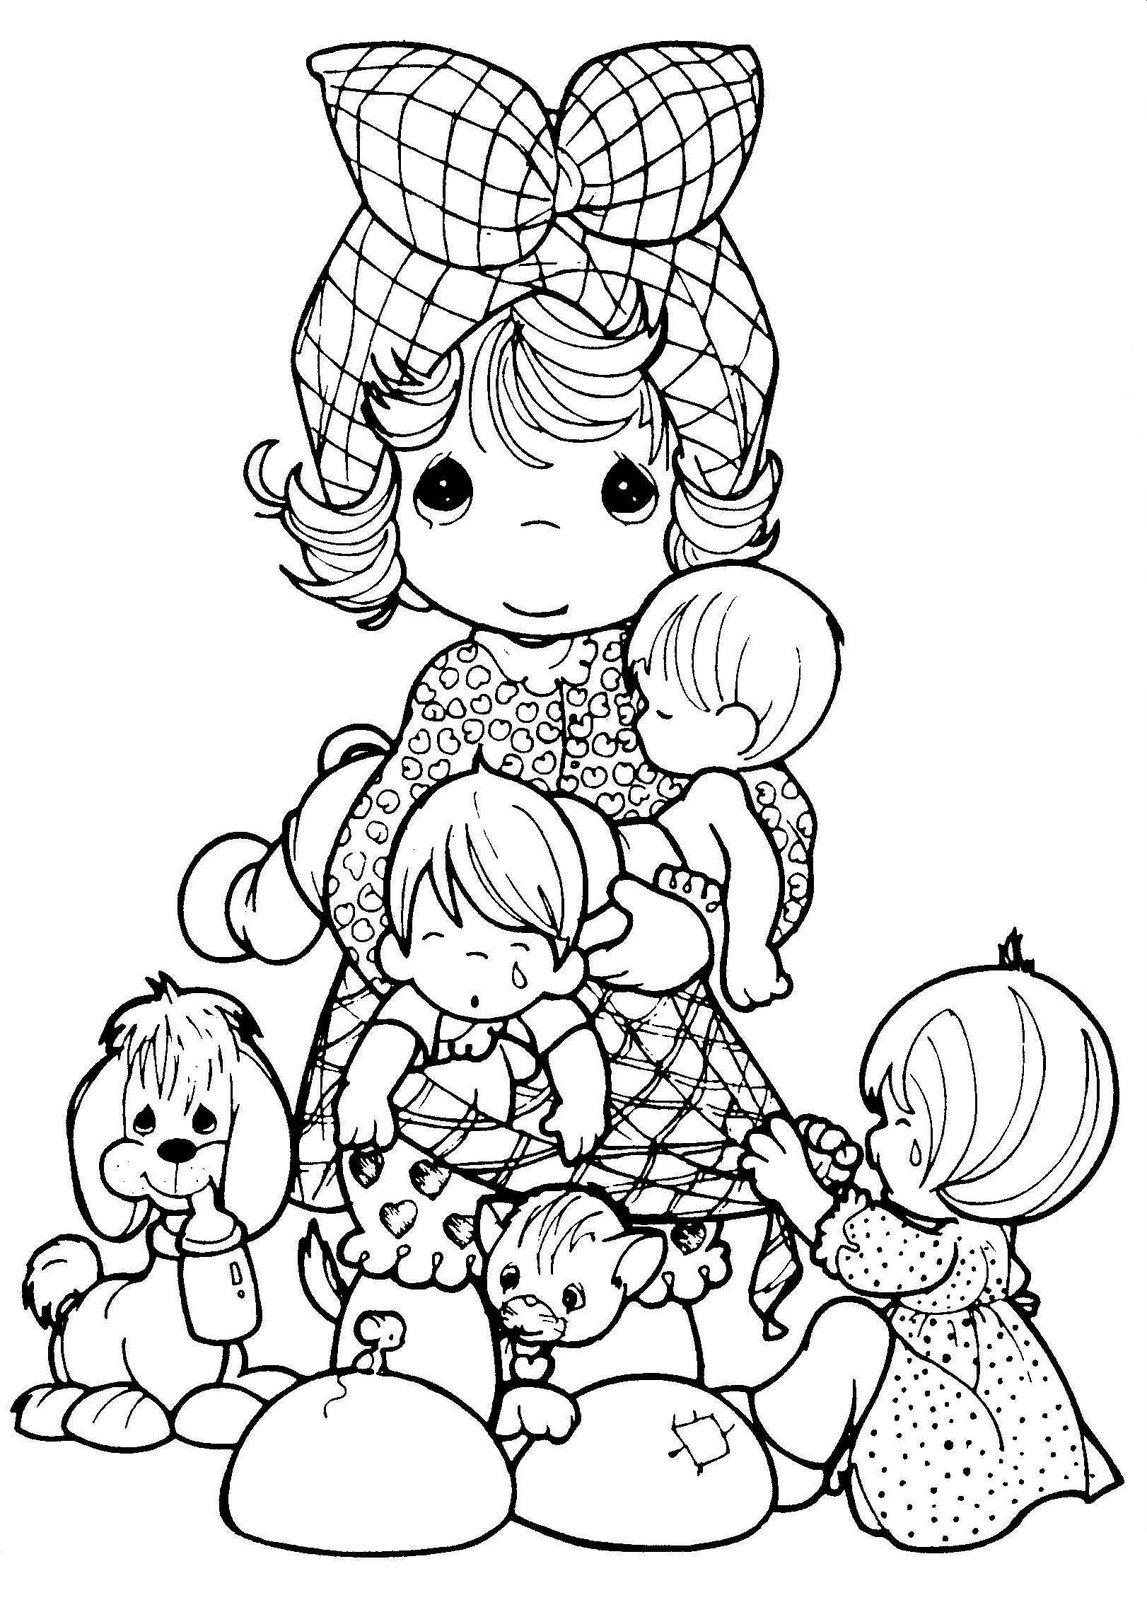 mother and children coloring ~ Child Coloring